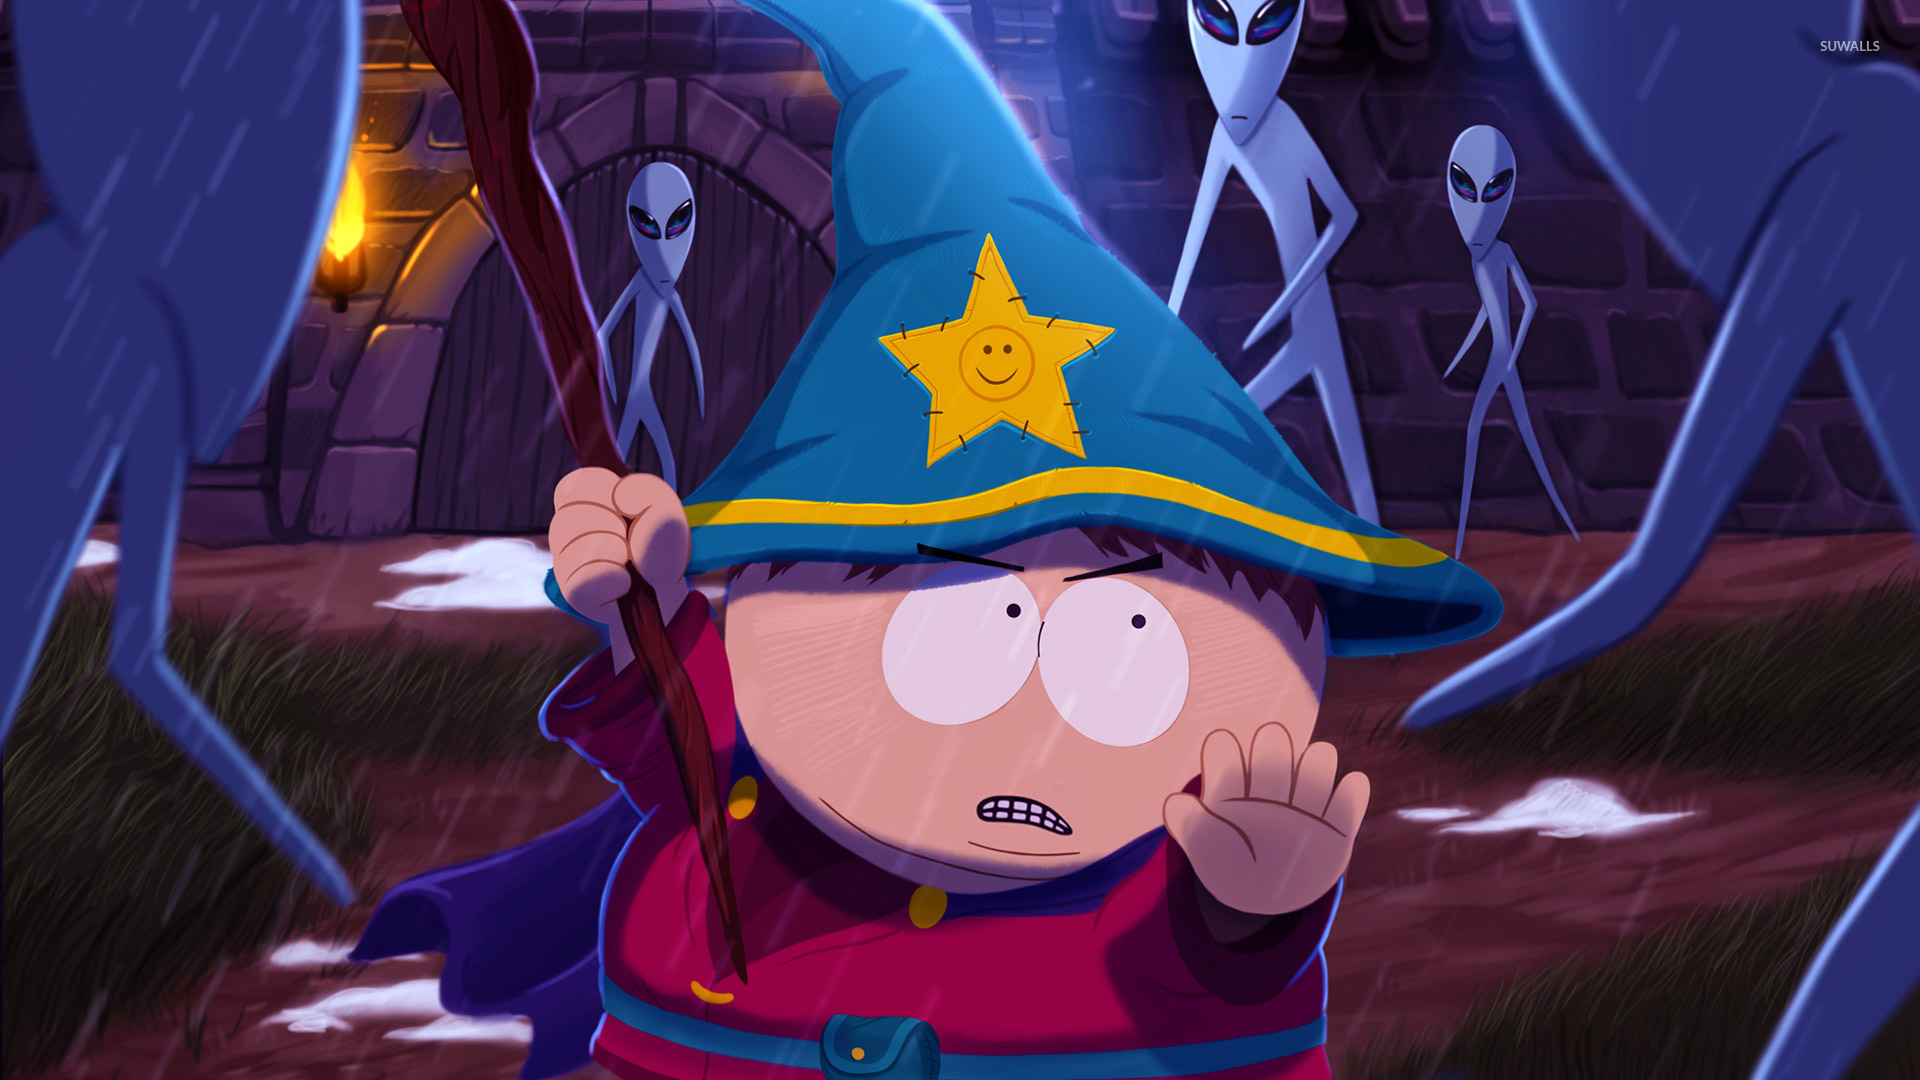 cartman-south-park-the-stick-of-truth-28838-1920x1080